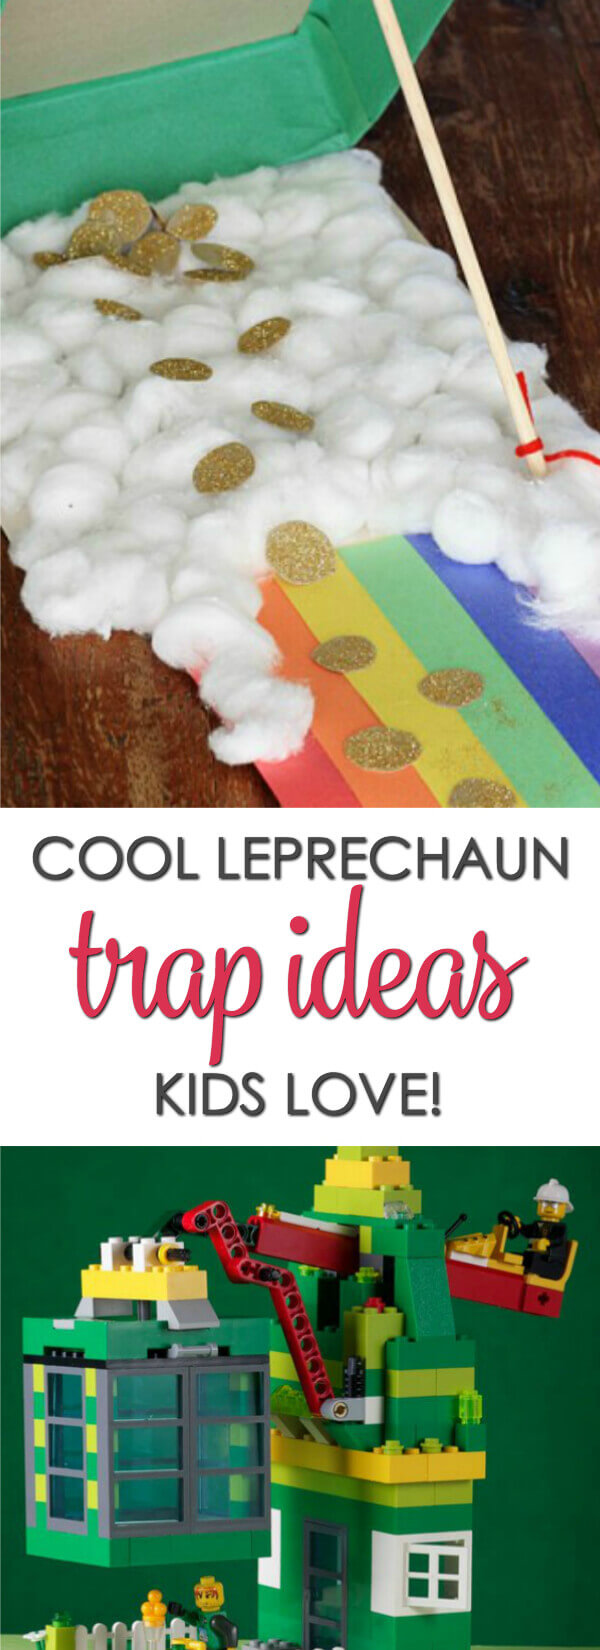 Make thisSt. Patrick's Day extra exciting by creating one of these leprechaun trap ideas kids love! This list has all sorts of cool leprechaun trap ideas that are sure to inspire you.  #itisakeeper #stpatricksday #leprechauntrap